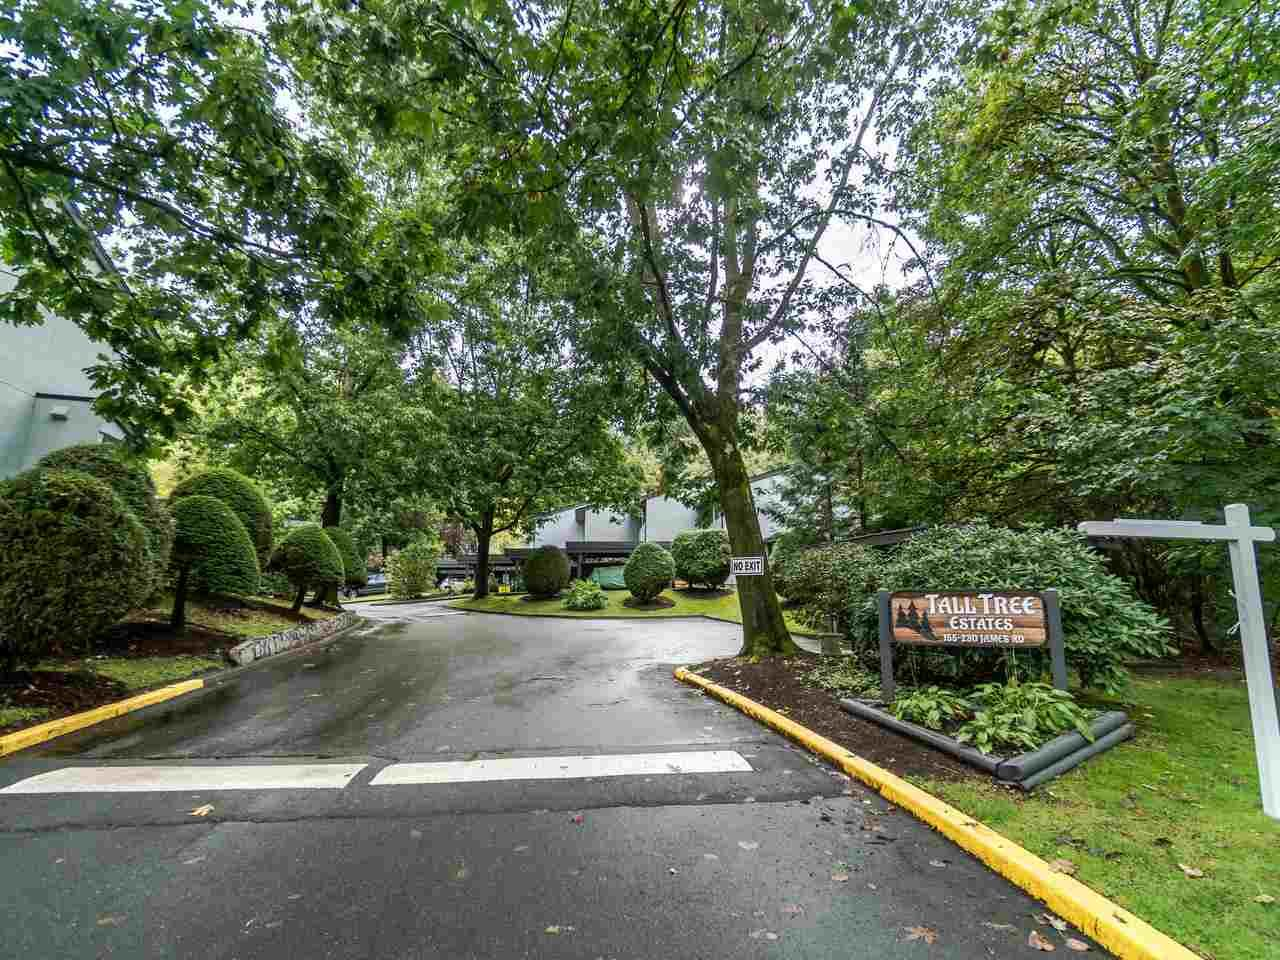 """Main Photo: 210 JAMES Road in Port Moody: Port Moody Centre Townhouse for sale in """"TALL TREE ESTATES"""" : MLS®# R2405921"""